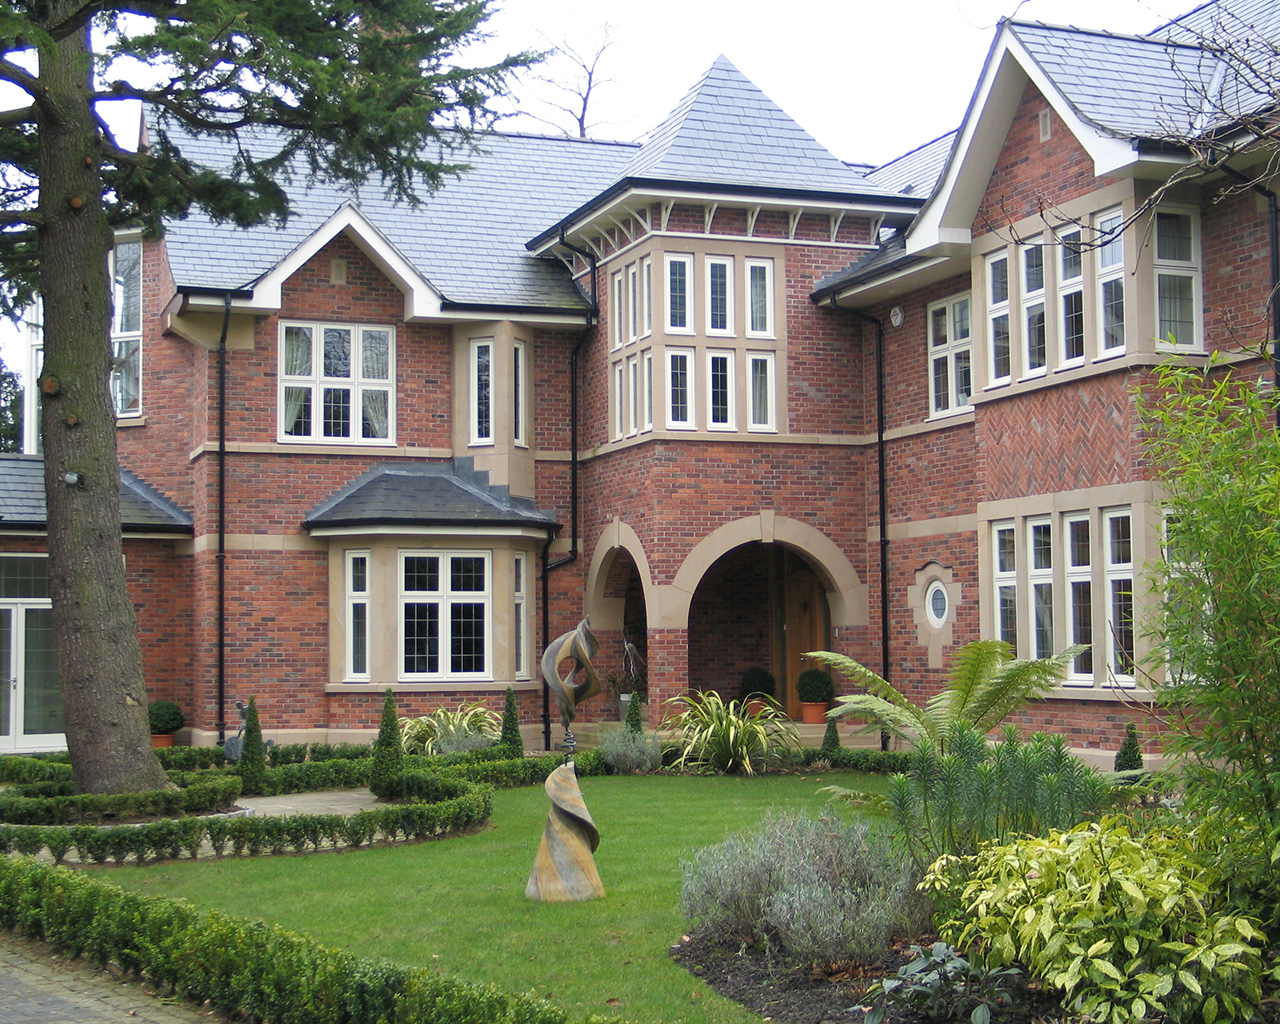 Five Bedroomed Luxury Property (Cheshire)